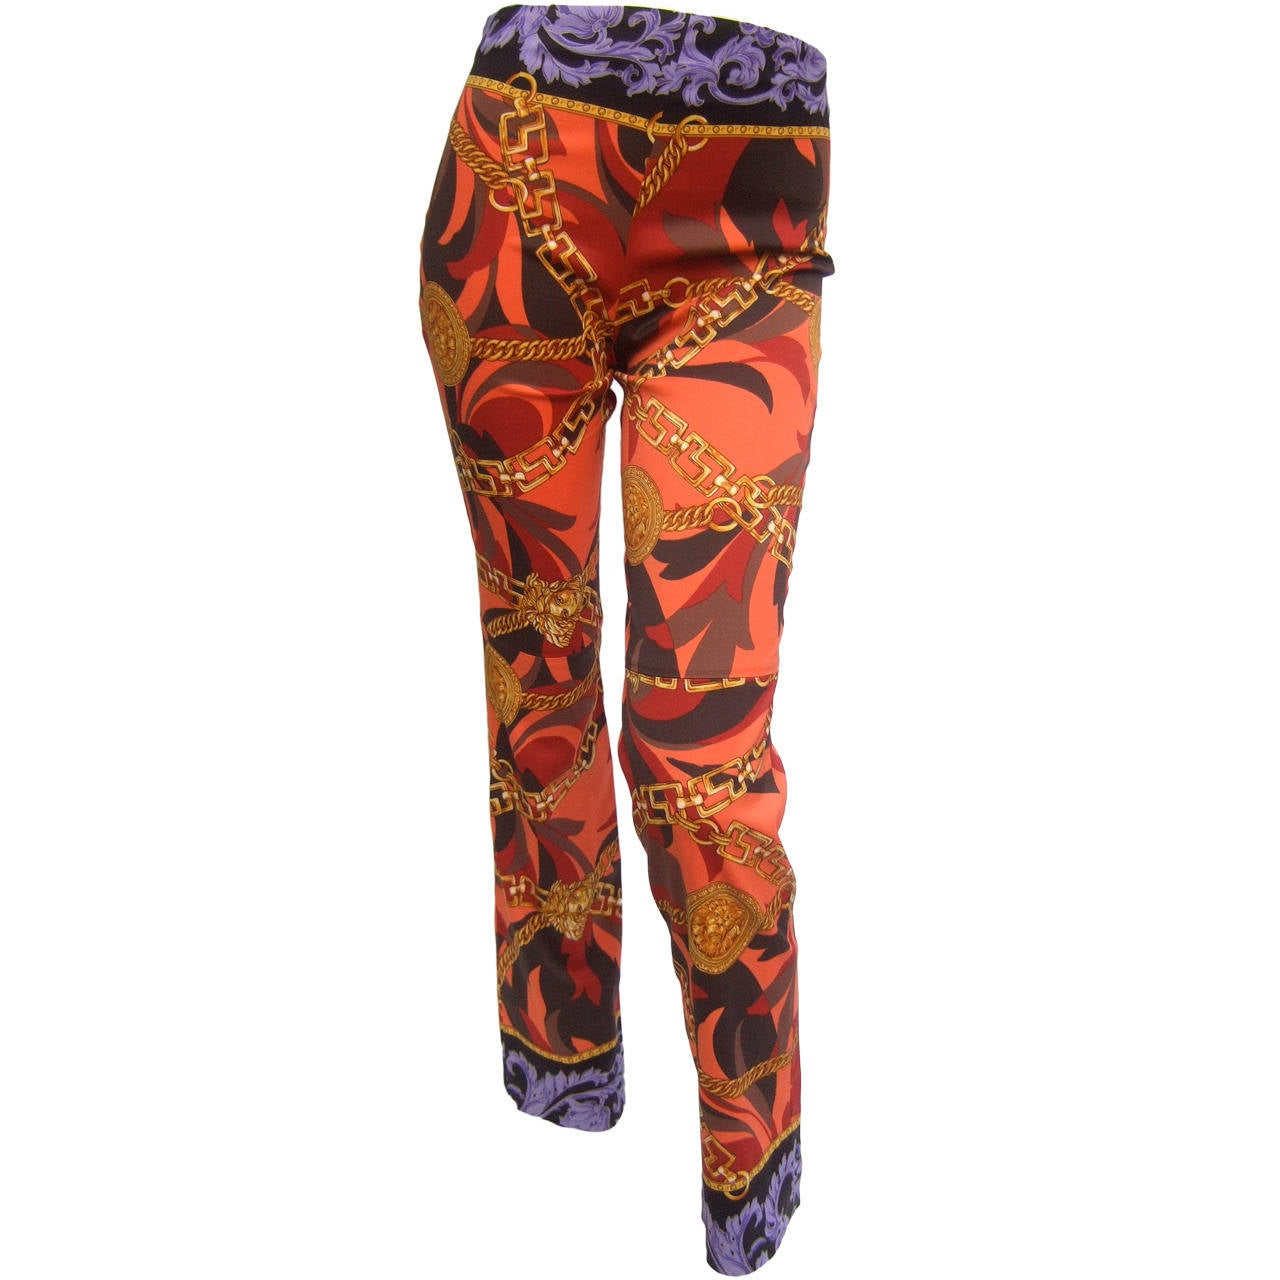 Versace Iconic Medusa Graphic Print Stretch Jeans Size 28 For Sale ...